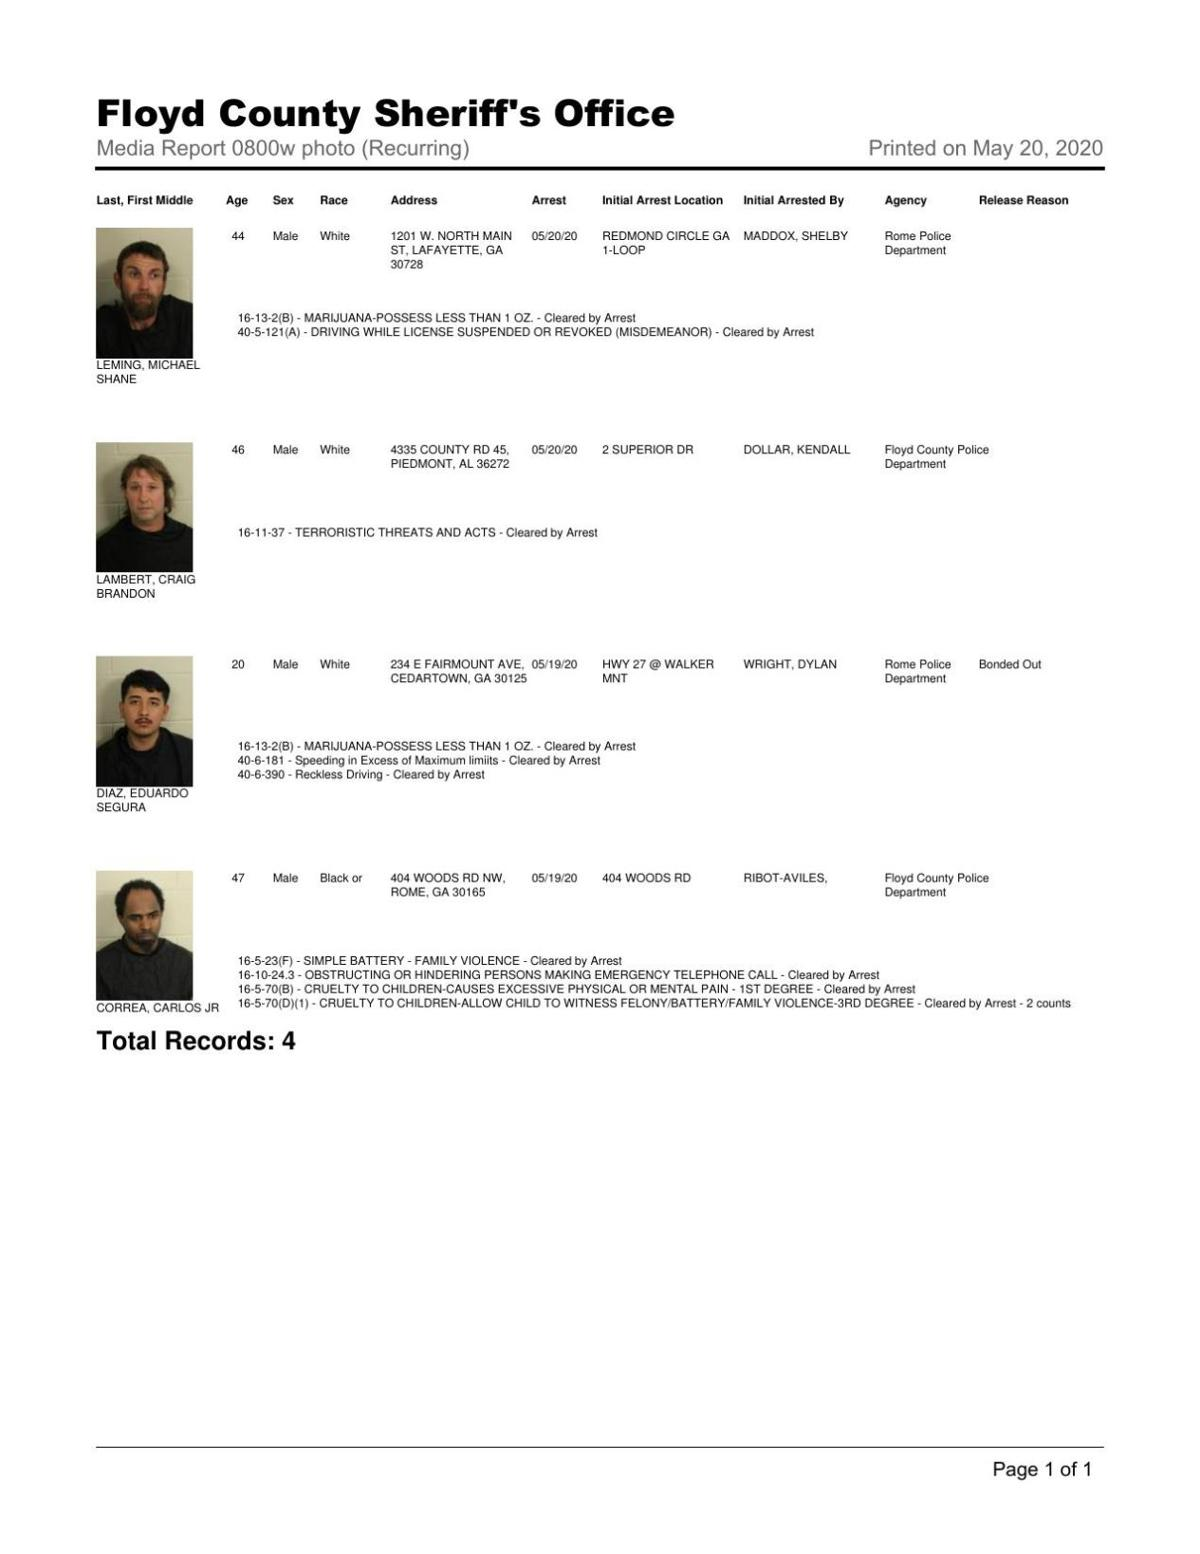 Floyd County Jail Report 8 a.m., Wednesday May 20